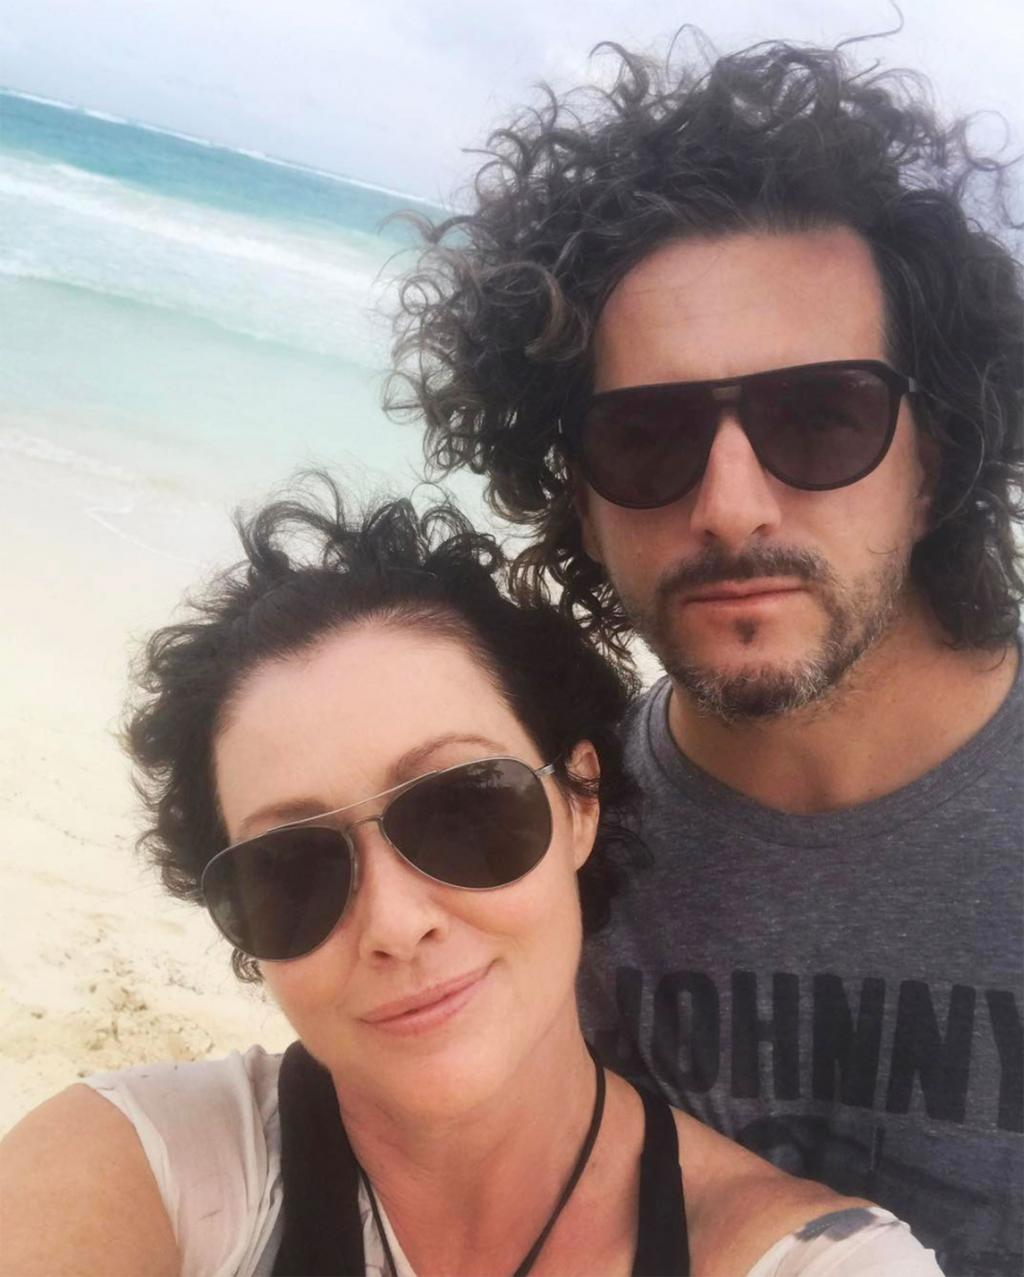 Shannen Doherty Shows Off Growing Locks Two Months After She Announced Her Remission